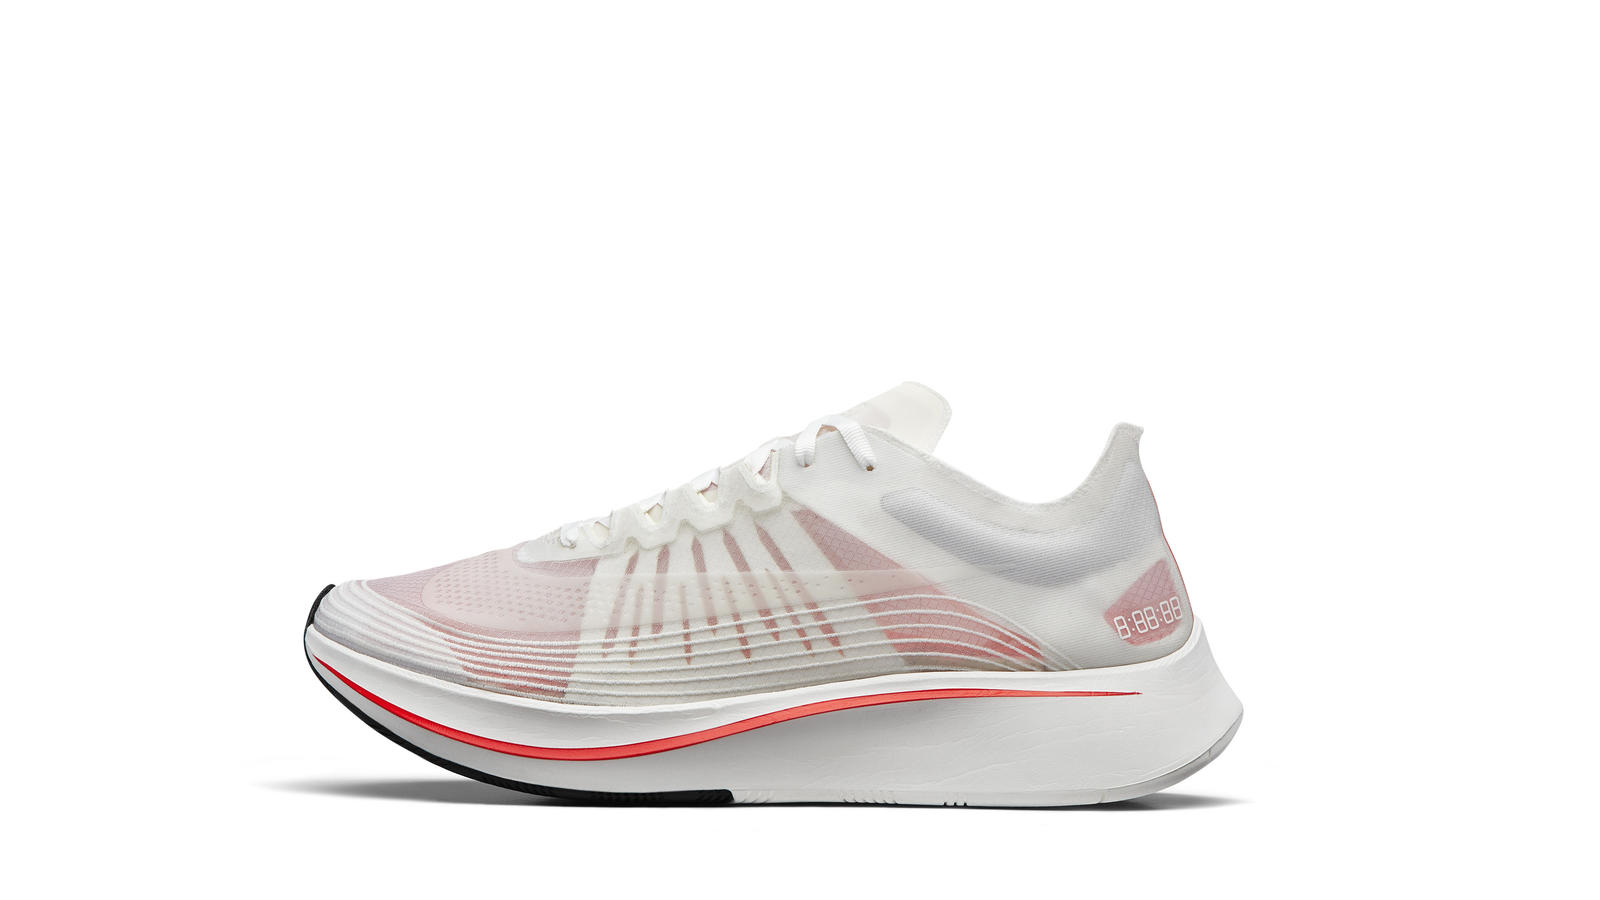 NikeLab's High Tech Zoom Fly SP Drops Next Month WearTesters